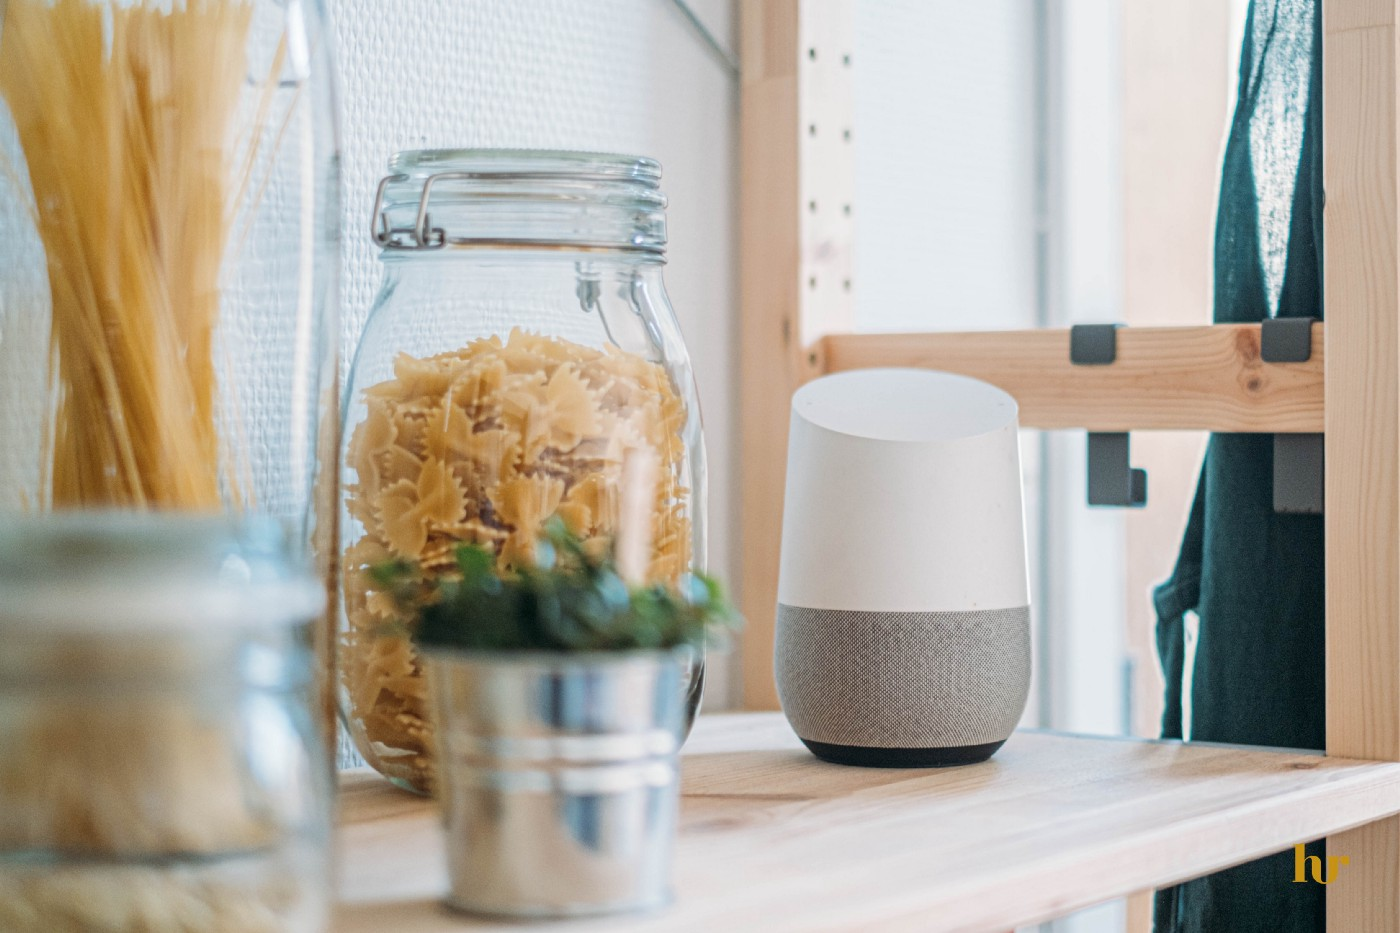 Image with a voice assistant sitting besides a jar of flakes.